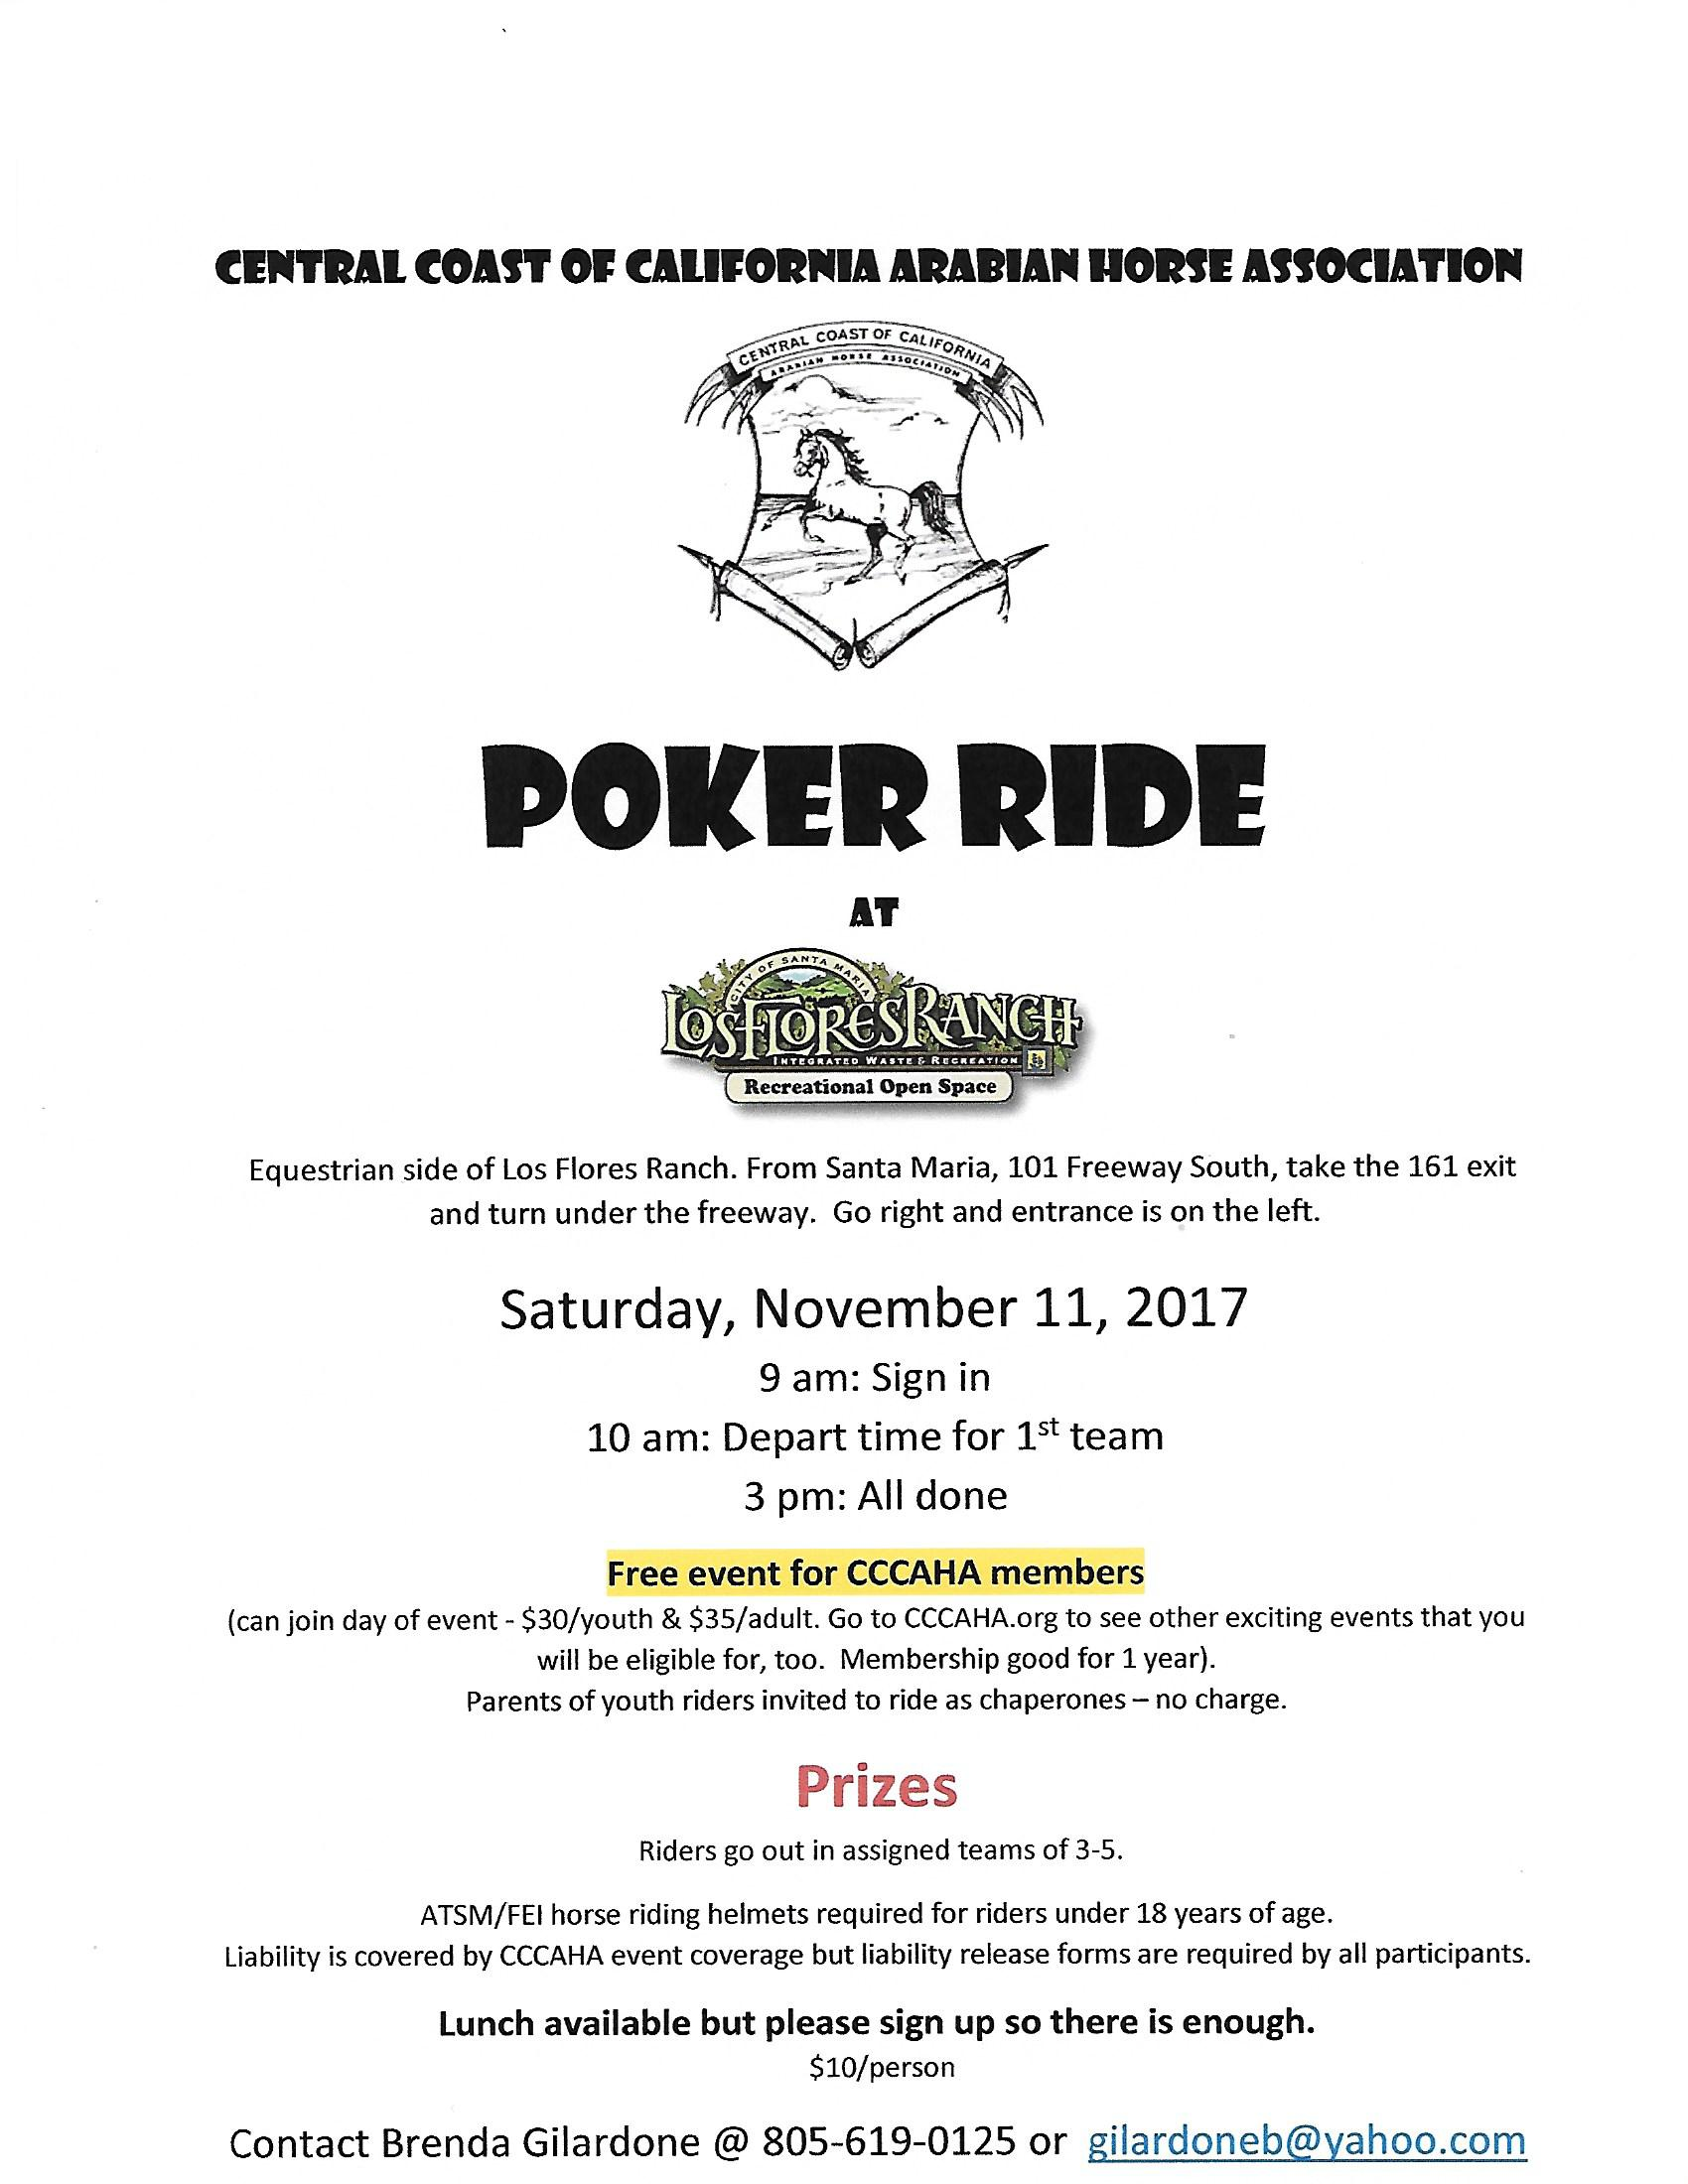 Take a Hand in a Poker Ride at Los Flores Ranch | SLO Horse News